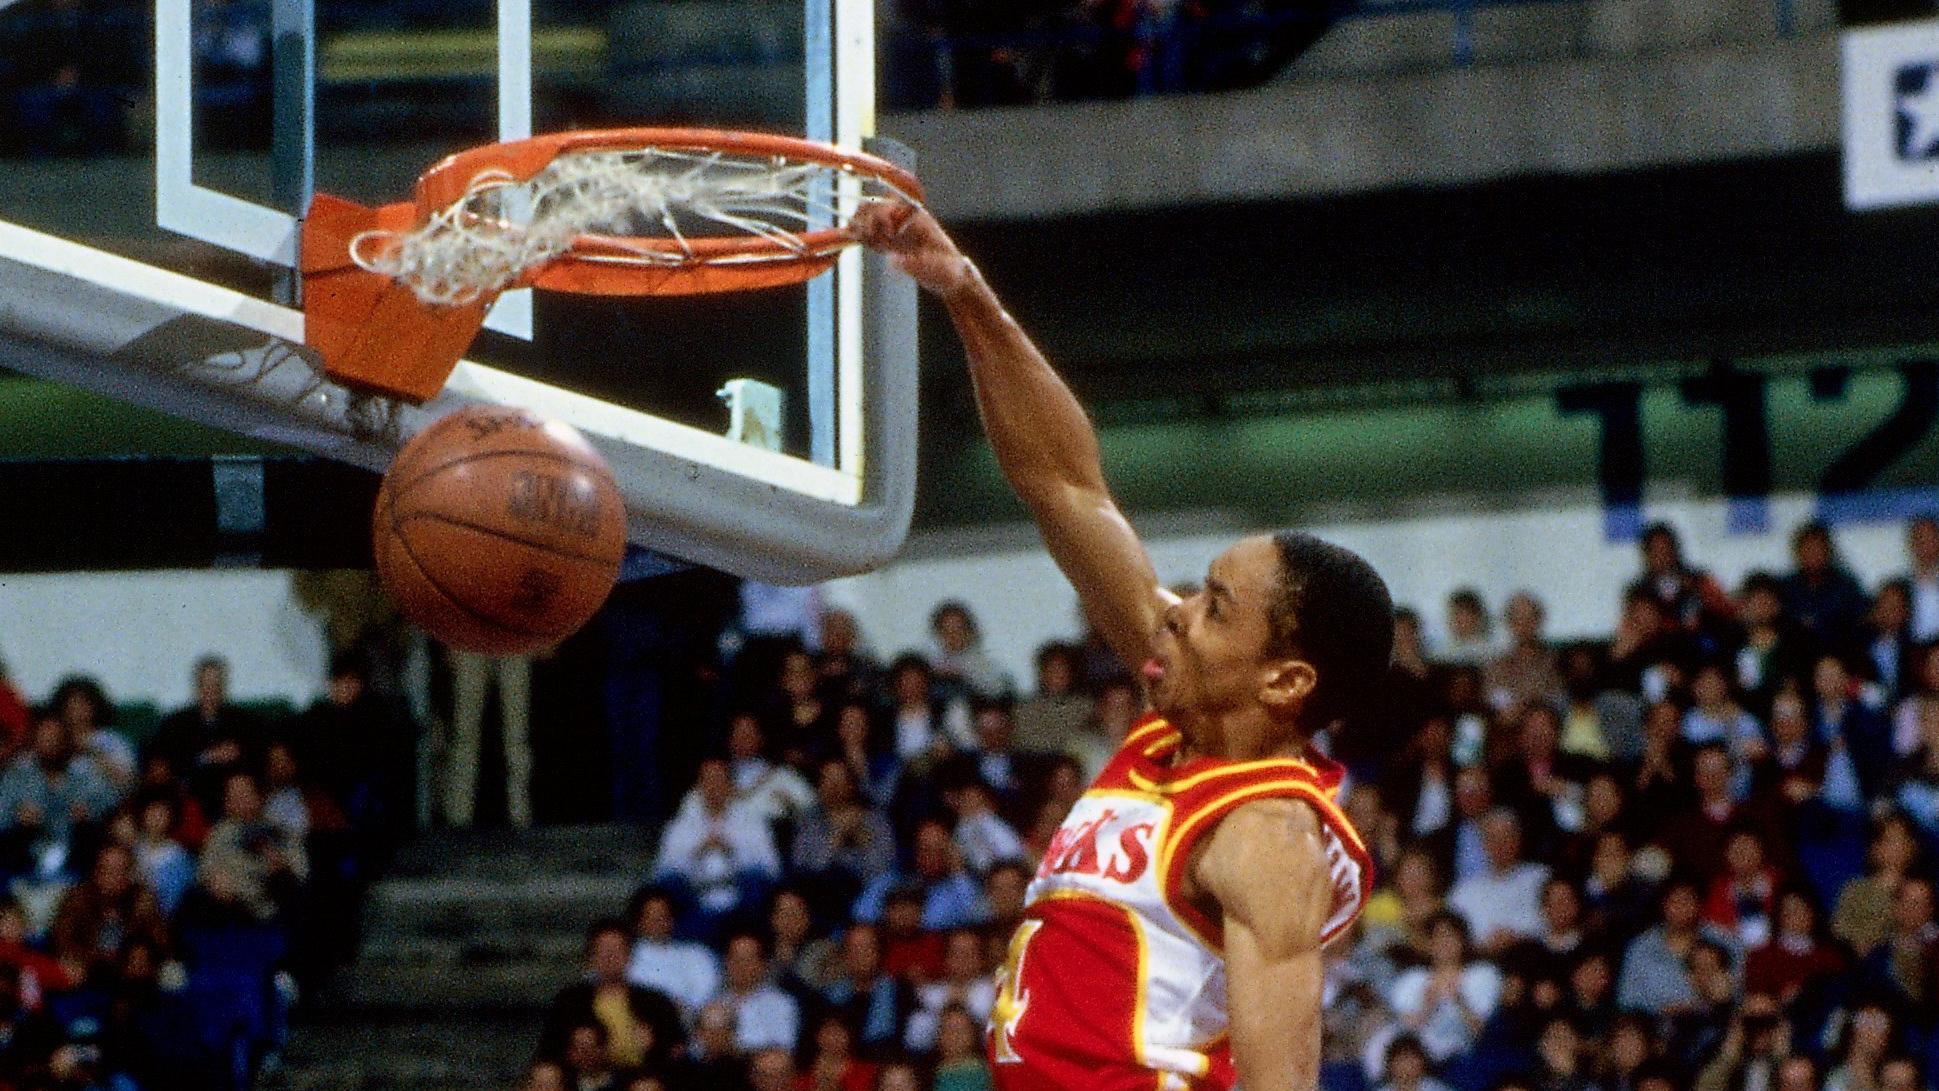 848c63c7c3dd The day Spud Webb took flight at the slam dunk contest